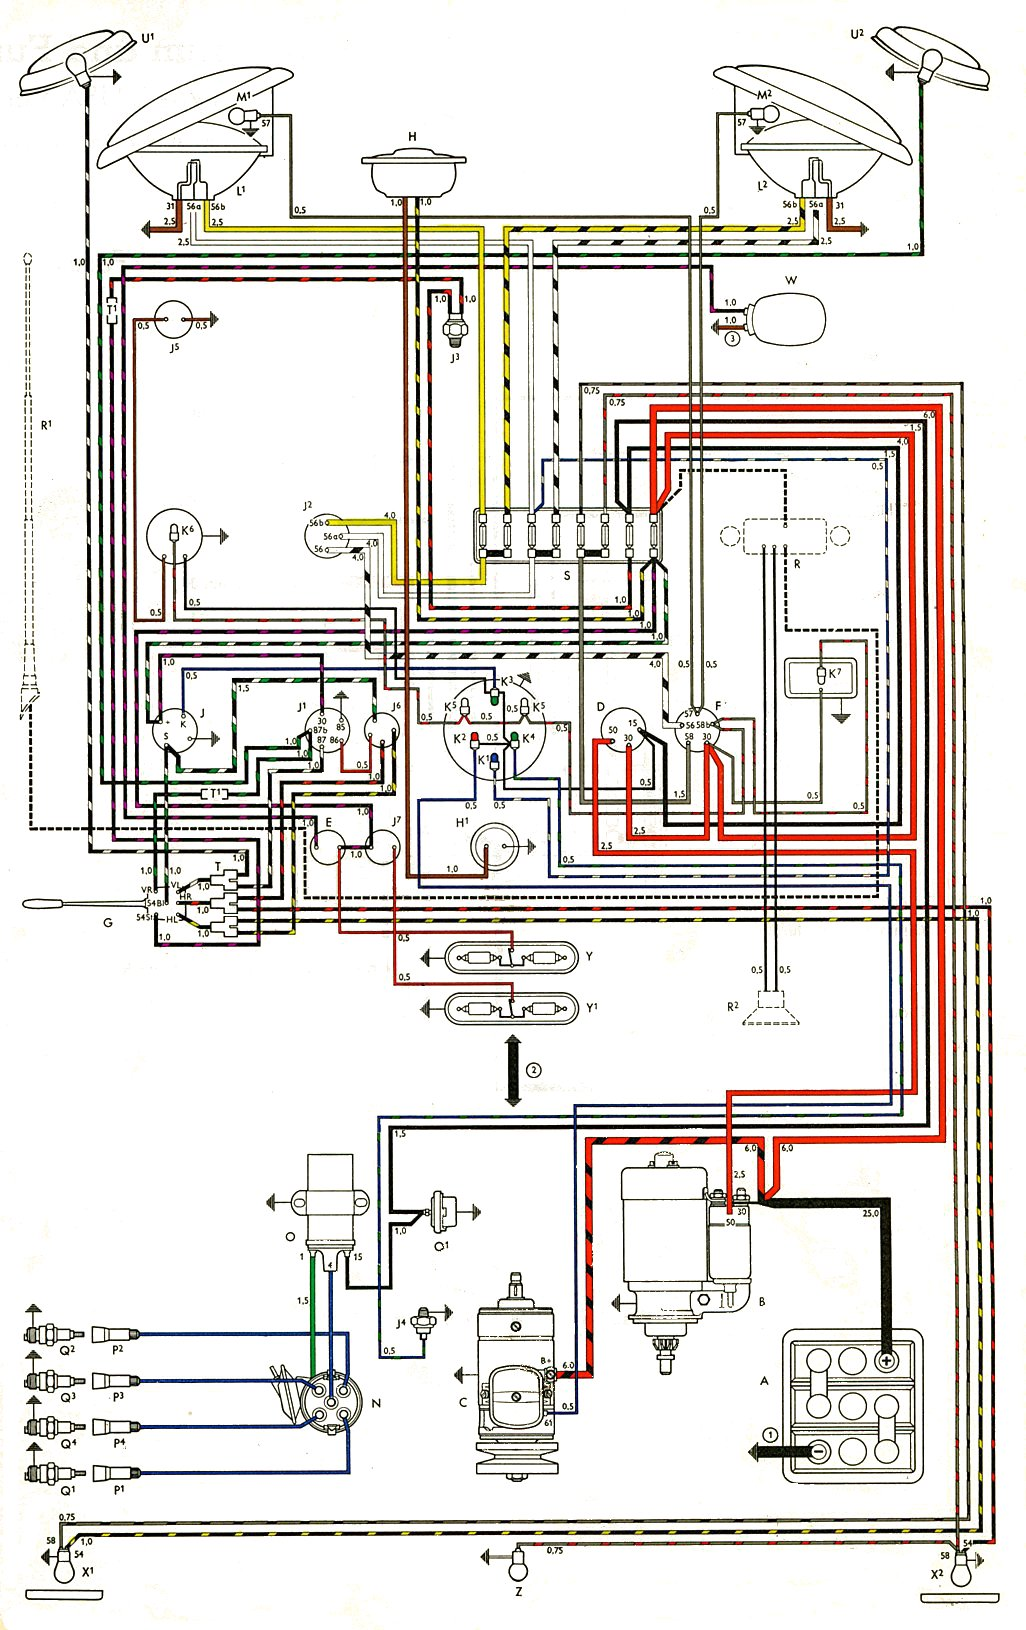 Vw Bus Wiring Diagram 1963 Trusted 1997 Jetta Thesamba Com Type 2 Diagrams Volkswagen Radio